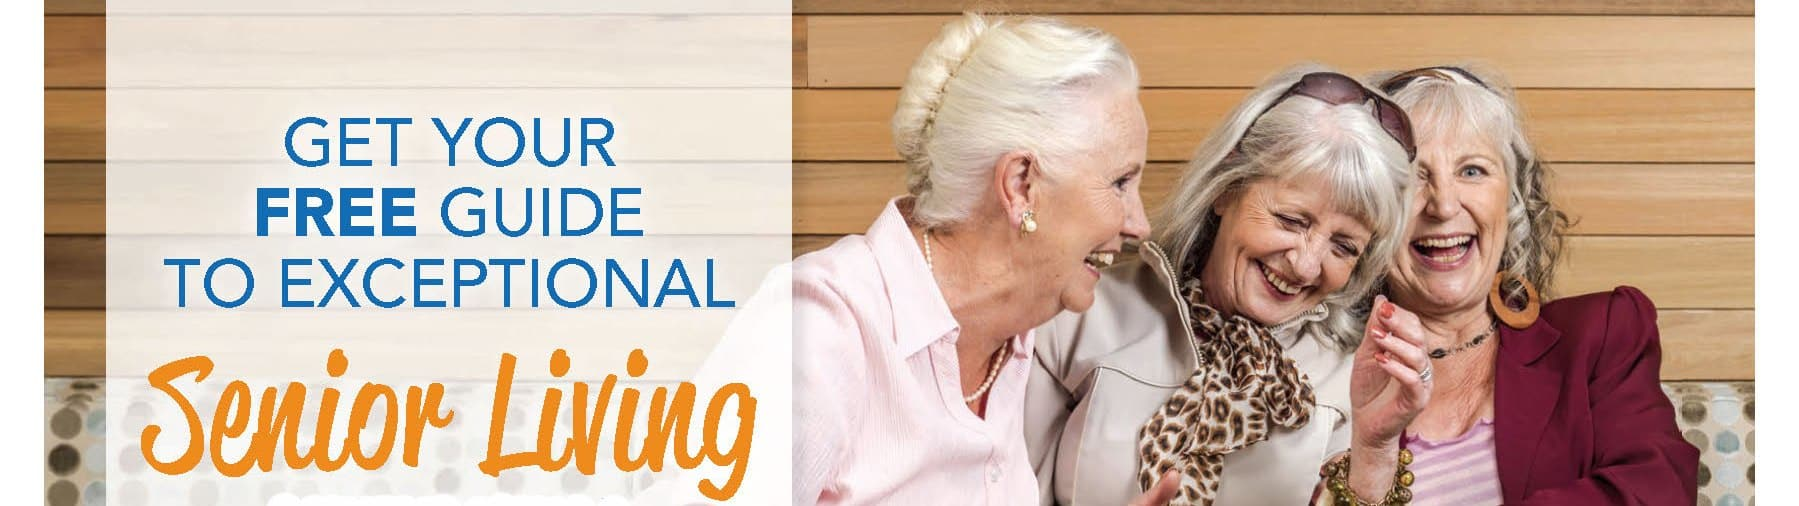 Get your free guide to exceptional senior living in Covington